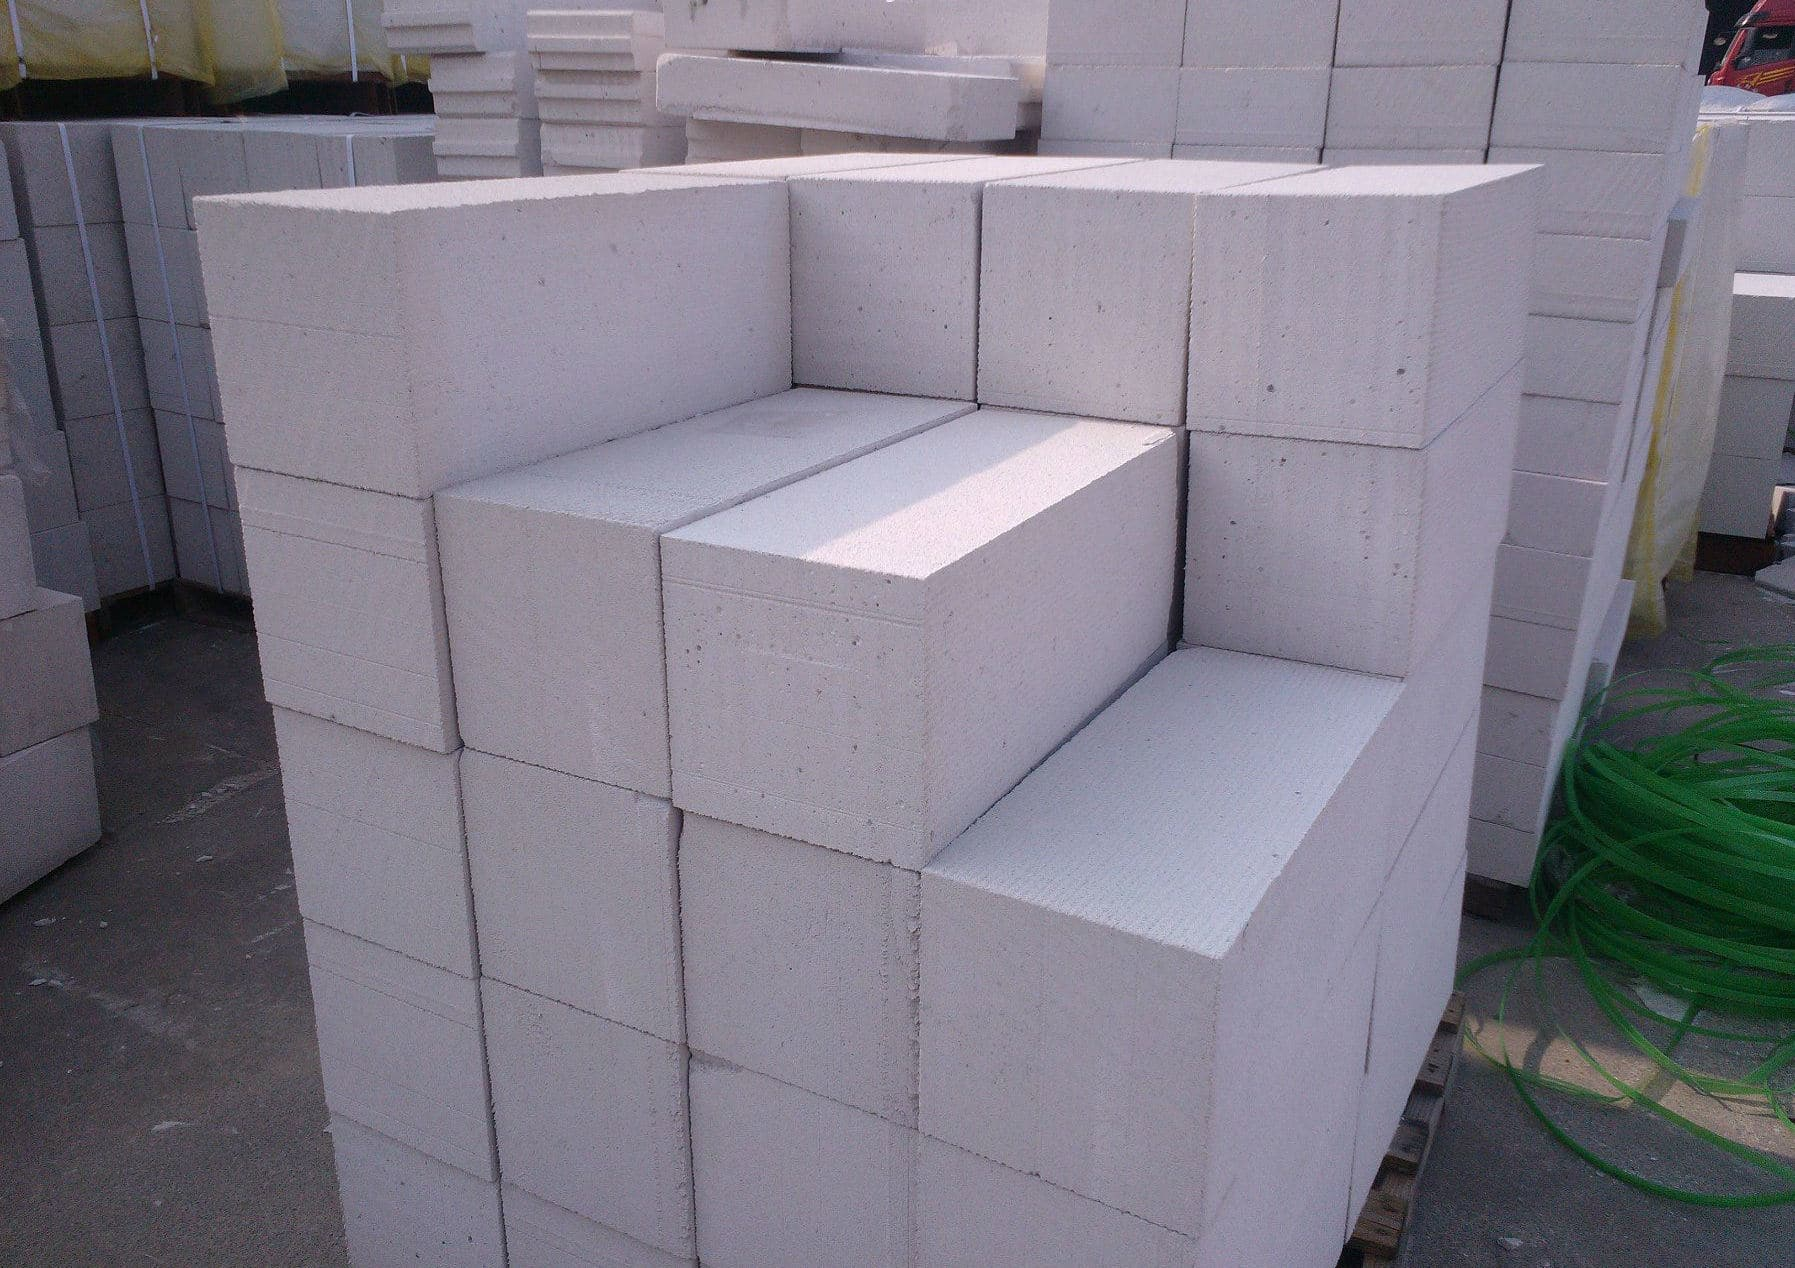 Autoclaved Aerated Cement Blocks - A new Kind of concrete is going unnoticed in the market.